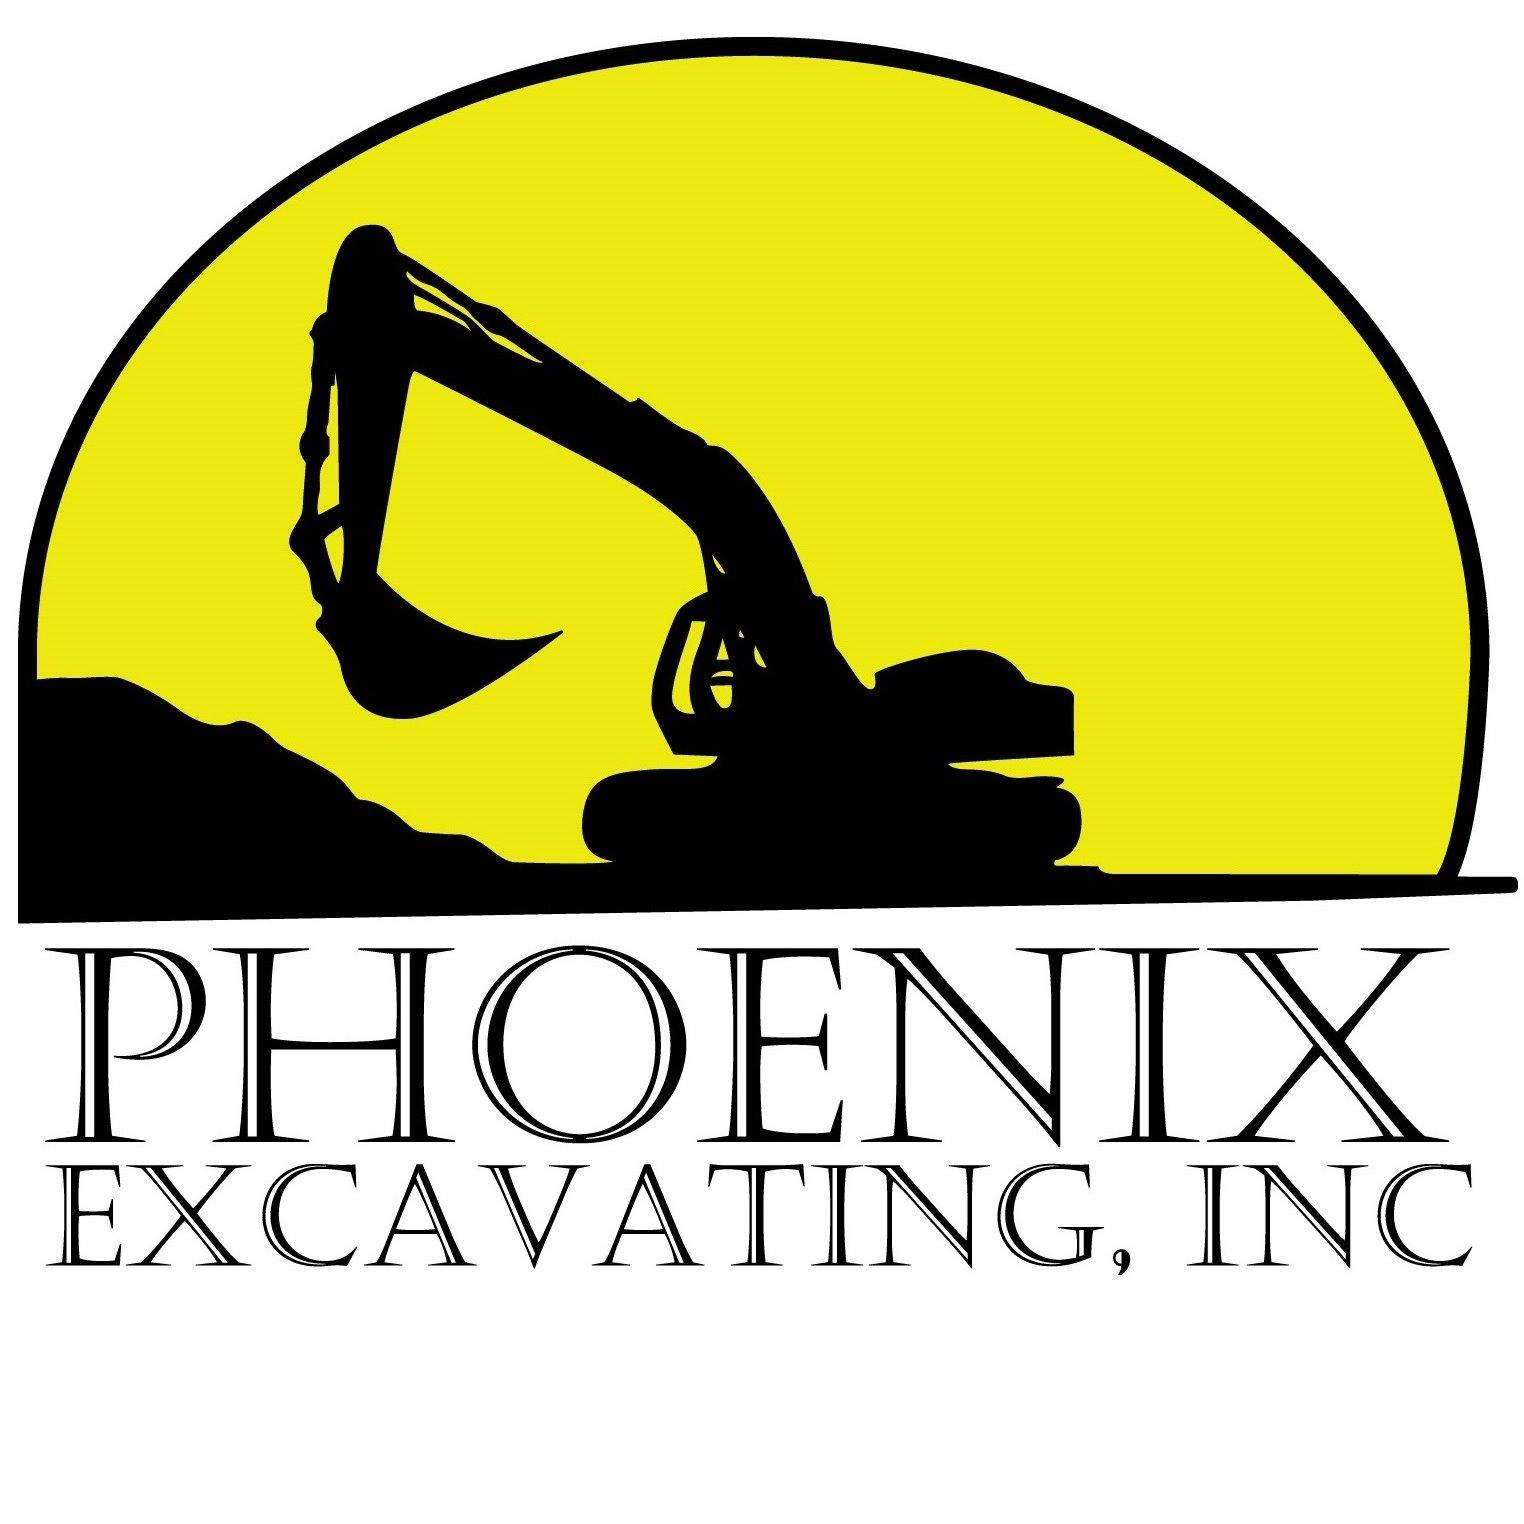 PHOENIX EXCAVATING INC.